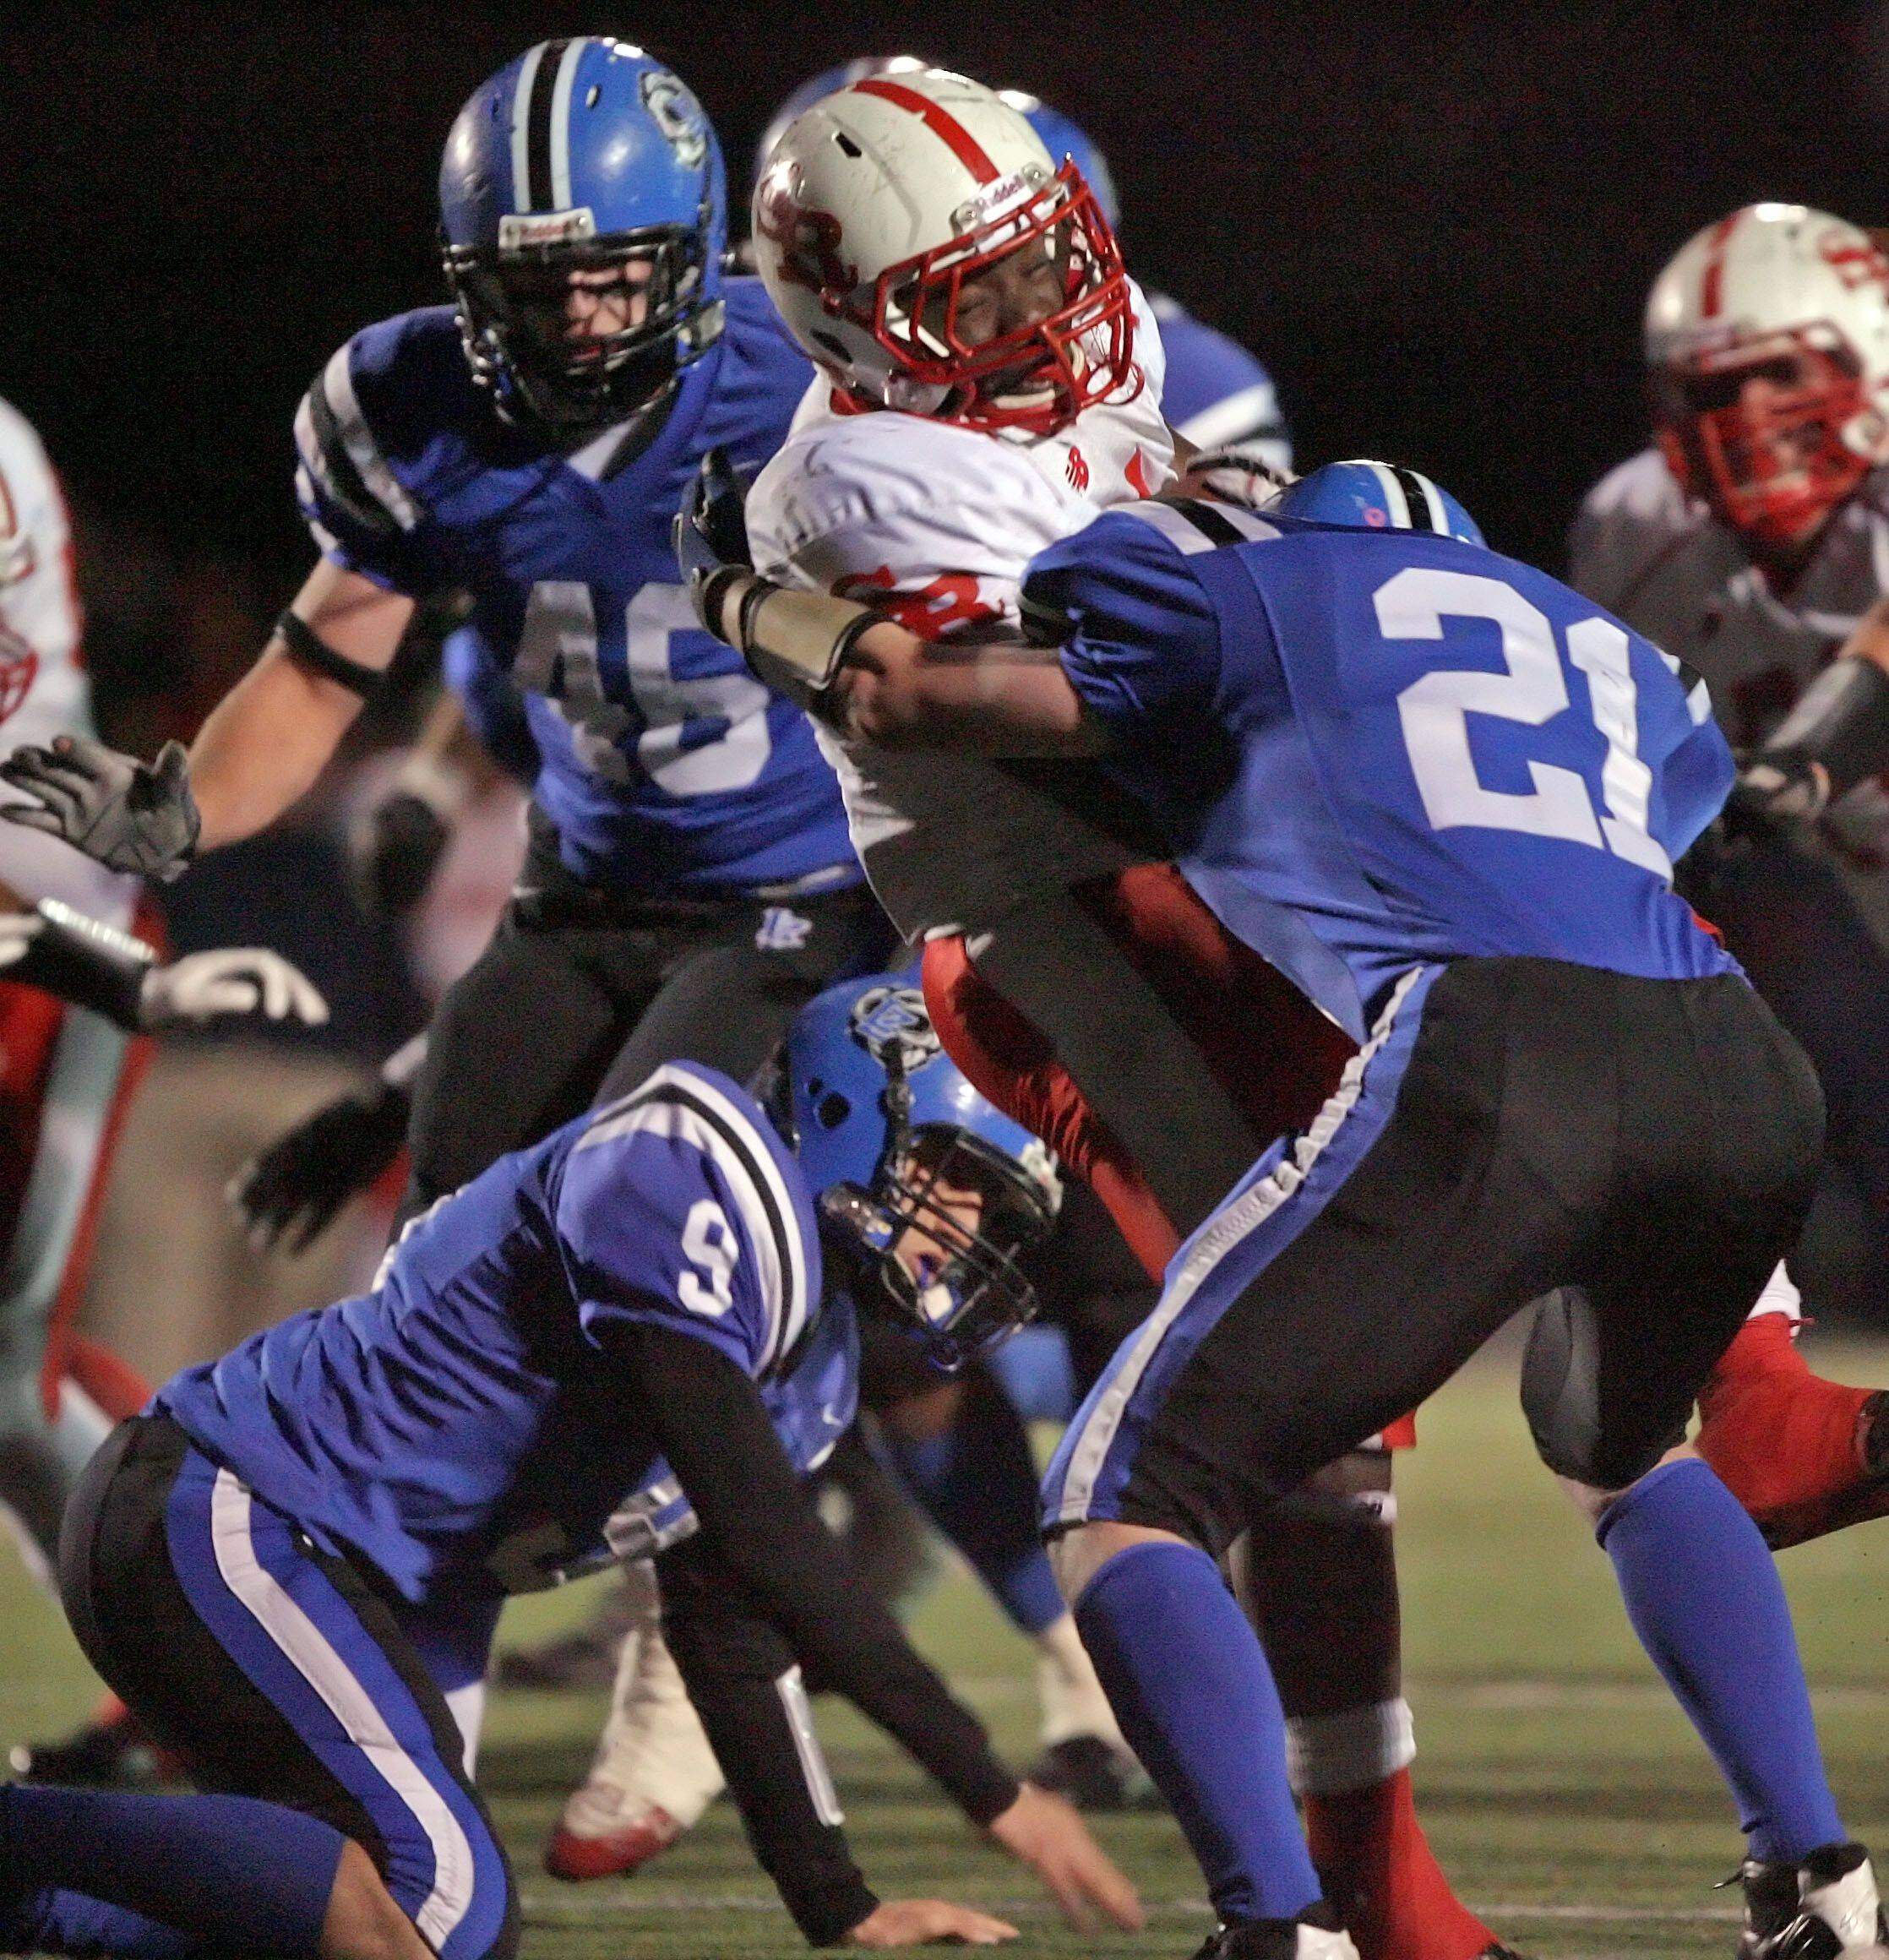 Lake Zurich's Bobby Rogers and Danny Minogue tackle St. Rita's Jahwon Akul during the IHSA Class 7A football semi final game Saturday night at Lake Zurich High School.